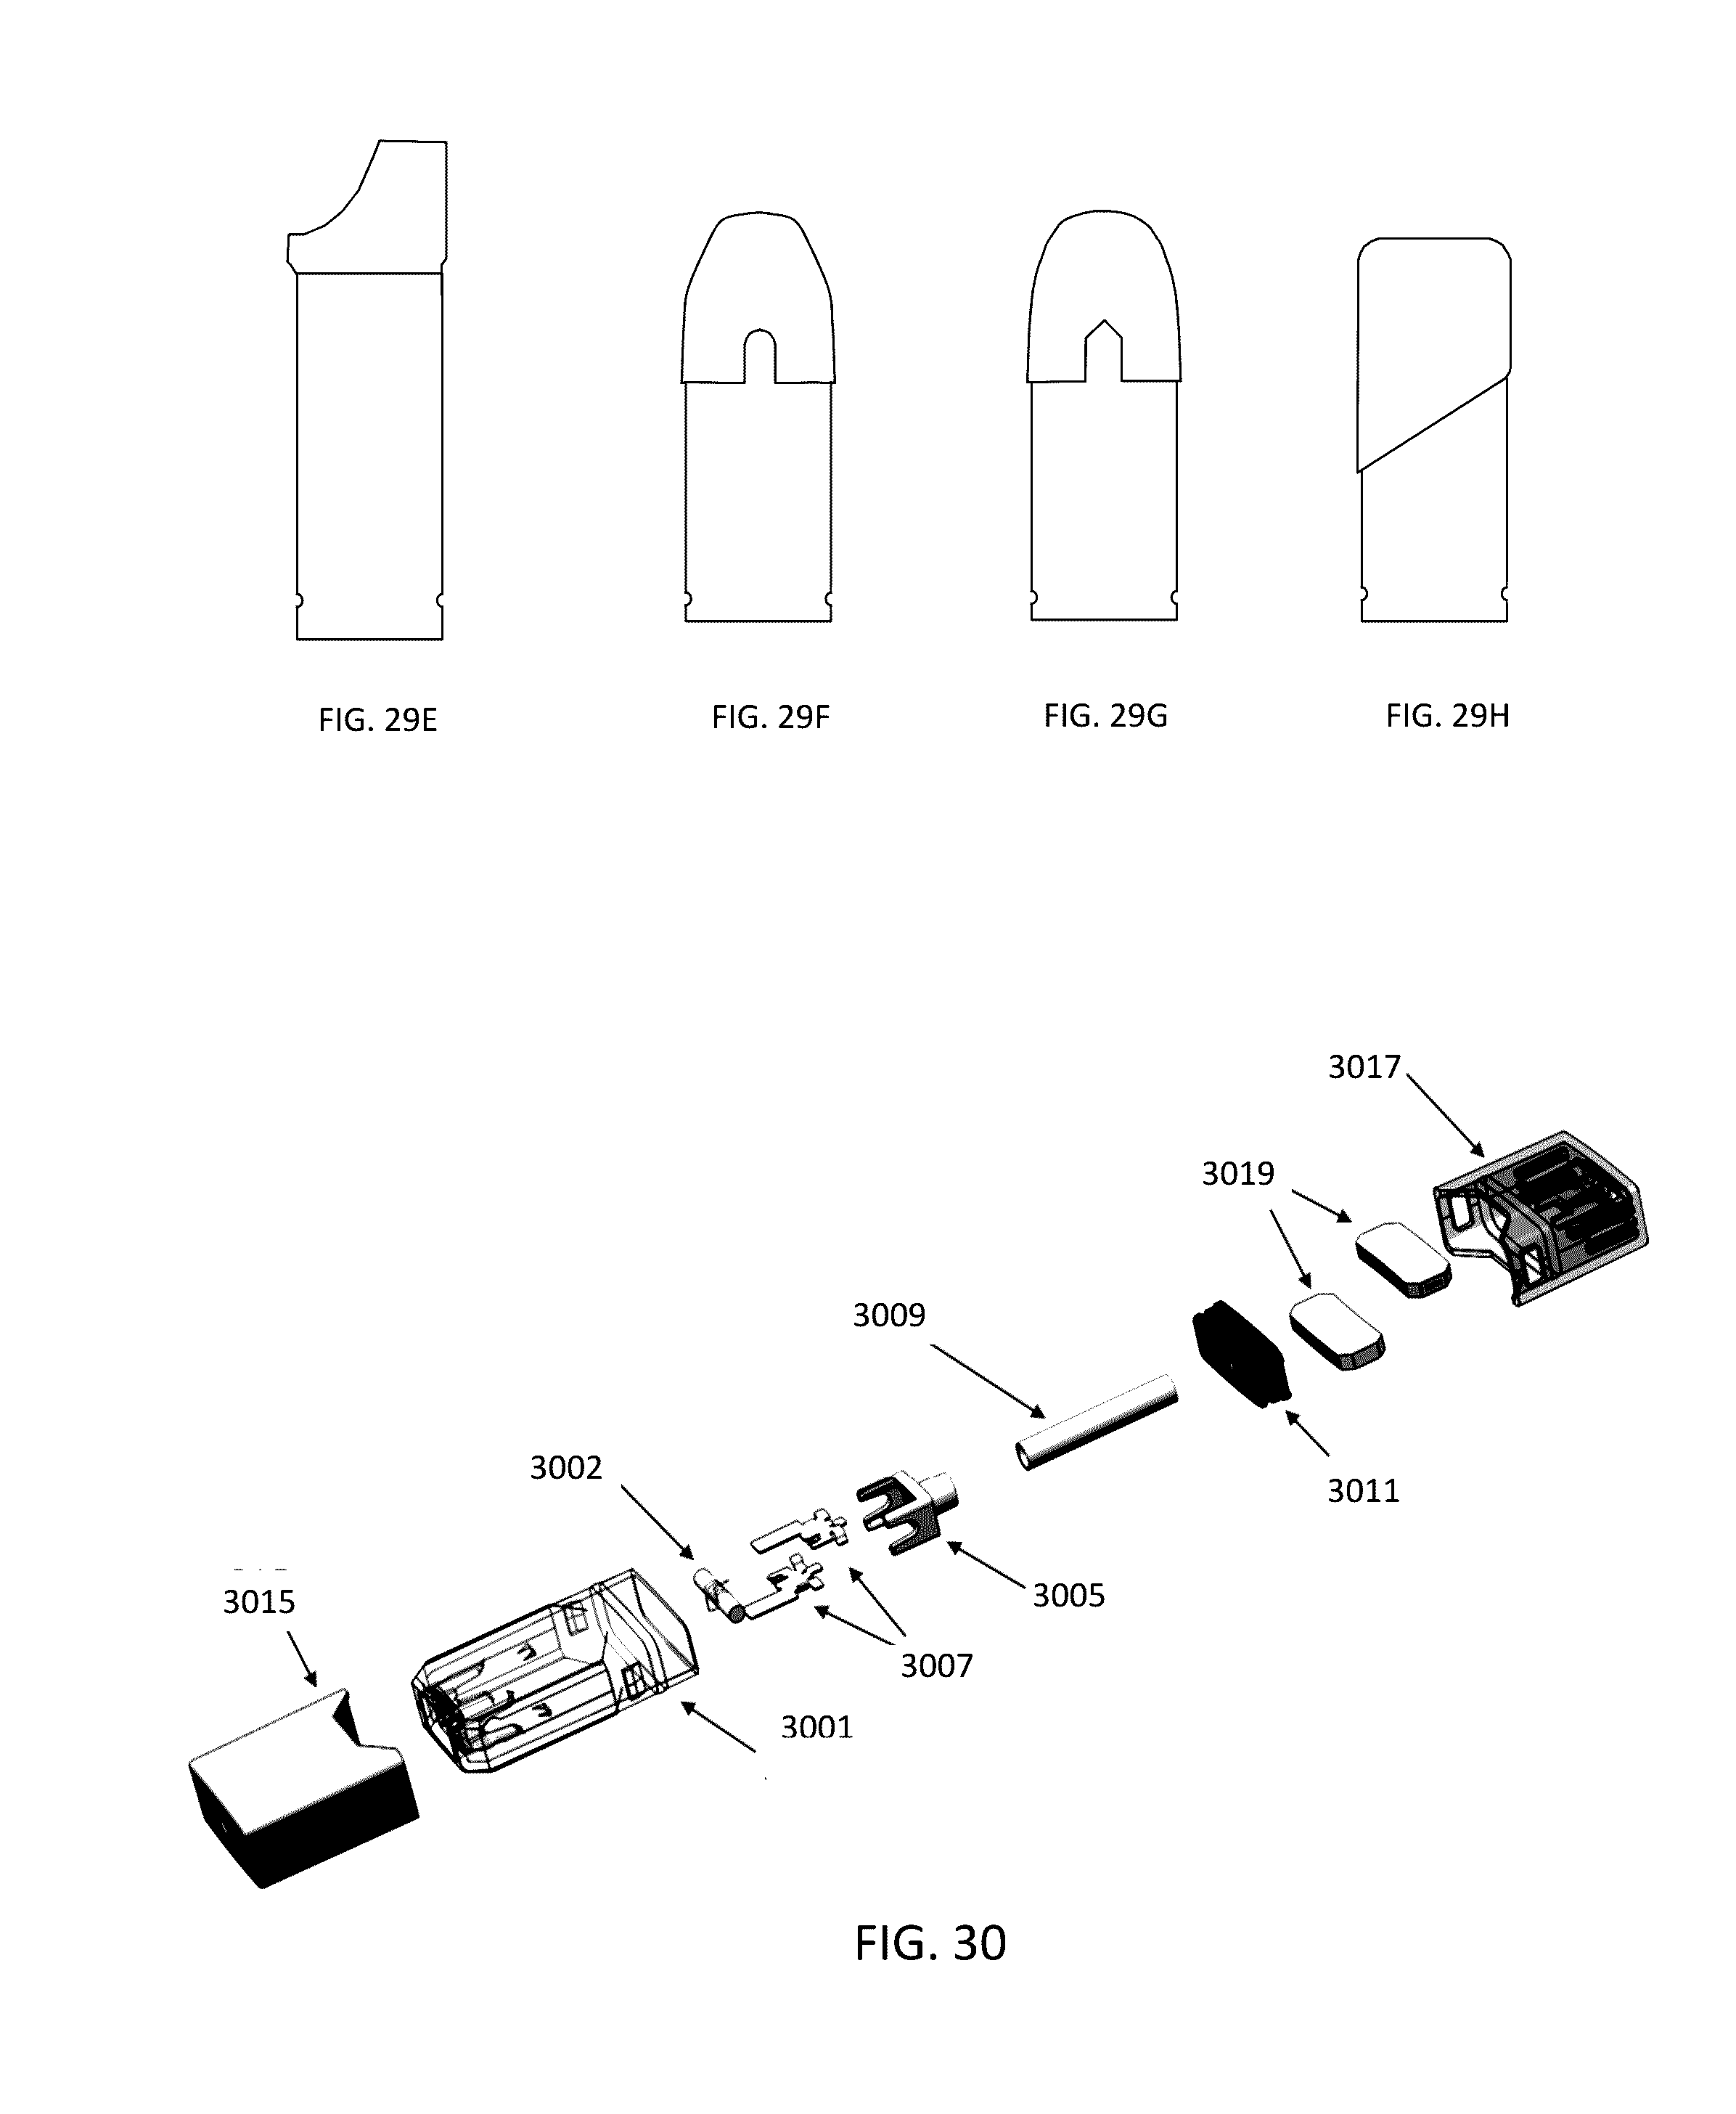 US20170035115A1 - Cartridge for use with a vaporizer device